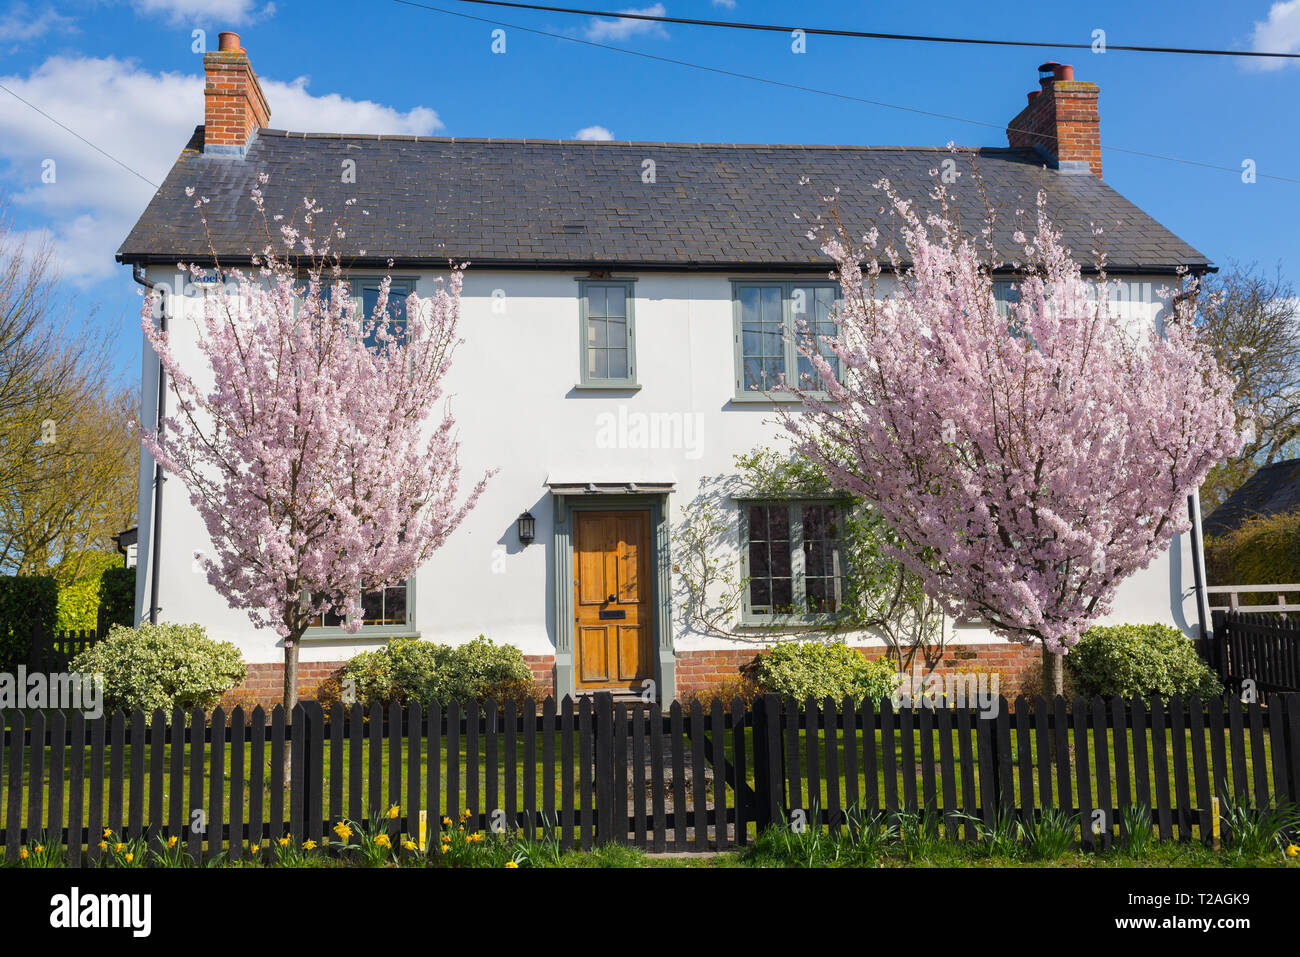 White country house with two cherry trees full of pink blossoms in the front garden in England, UK Stock Photo